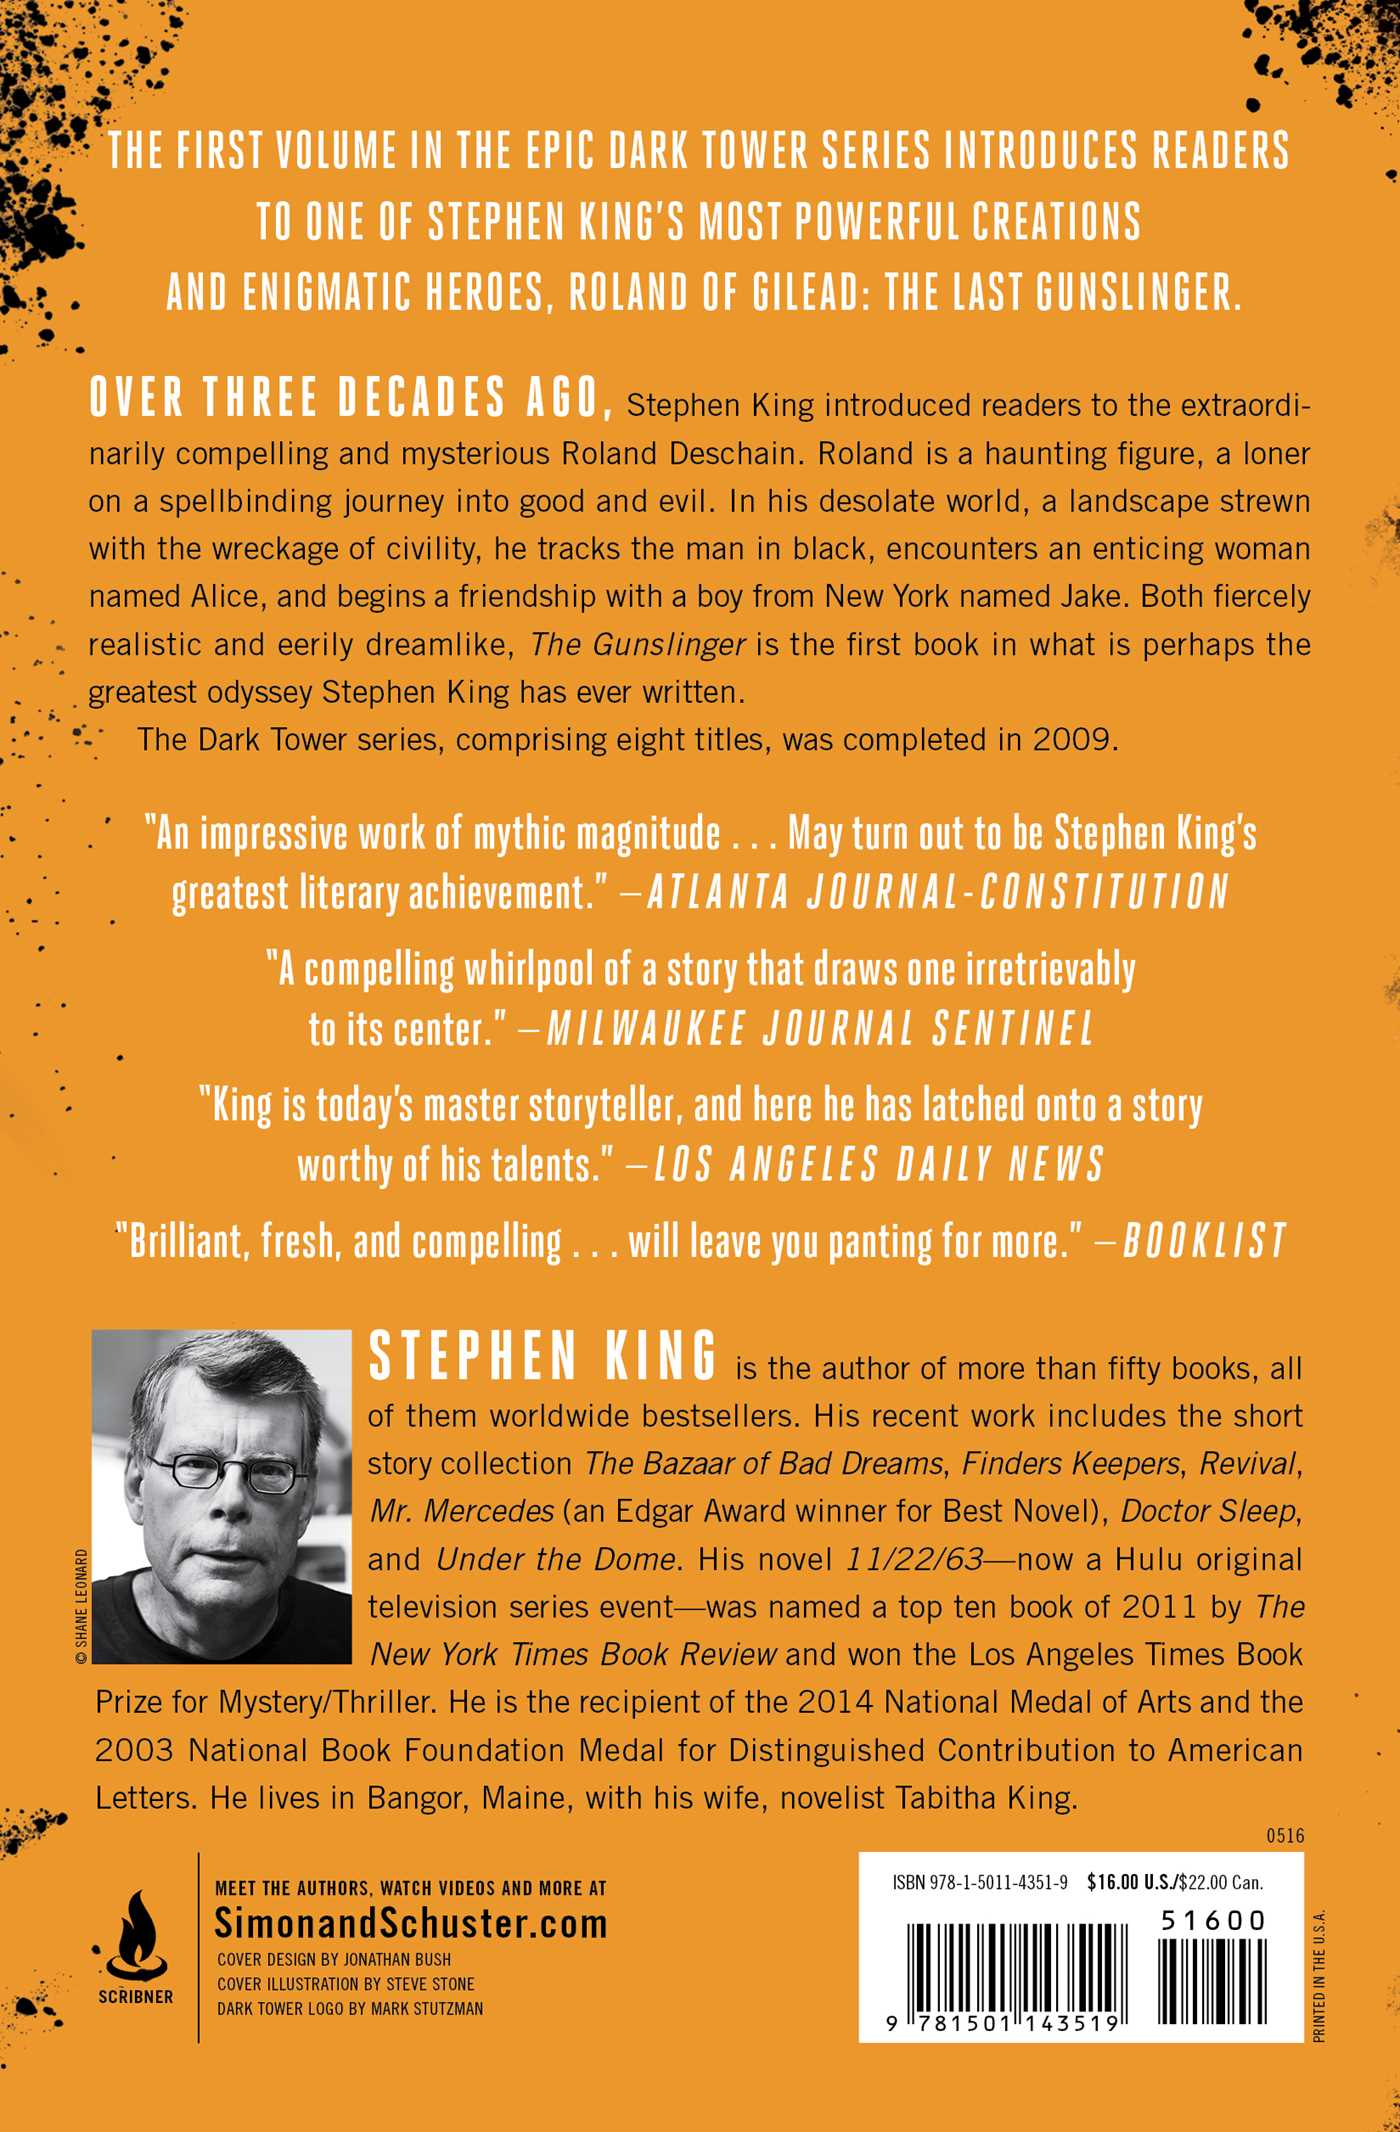 A biography of stephen king one of the best writers and a brief history of his work